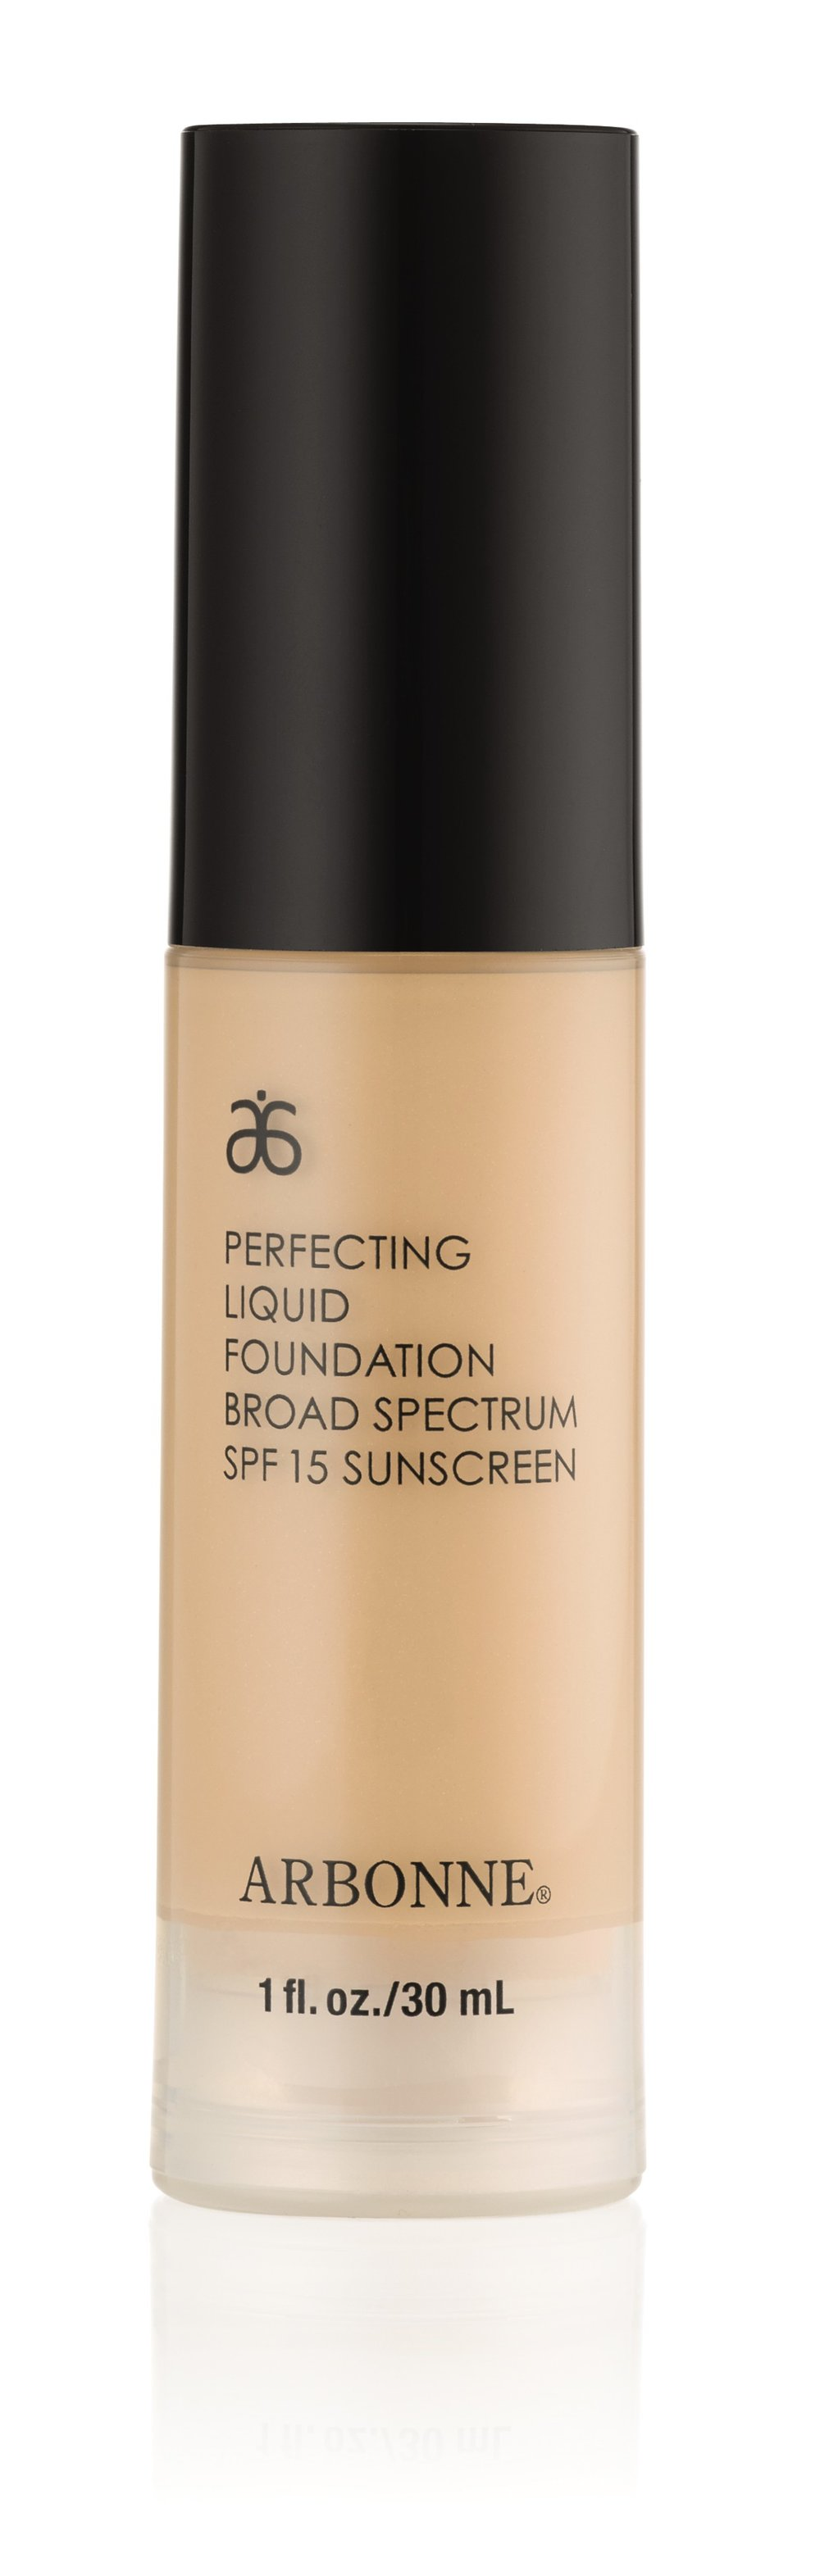 Arbonne Cosmetics Perfecting Liquid Foundation.jpg